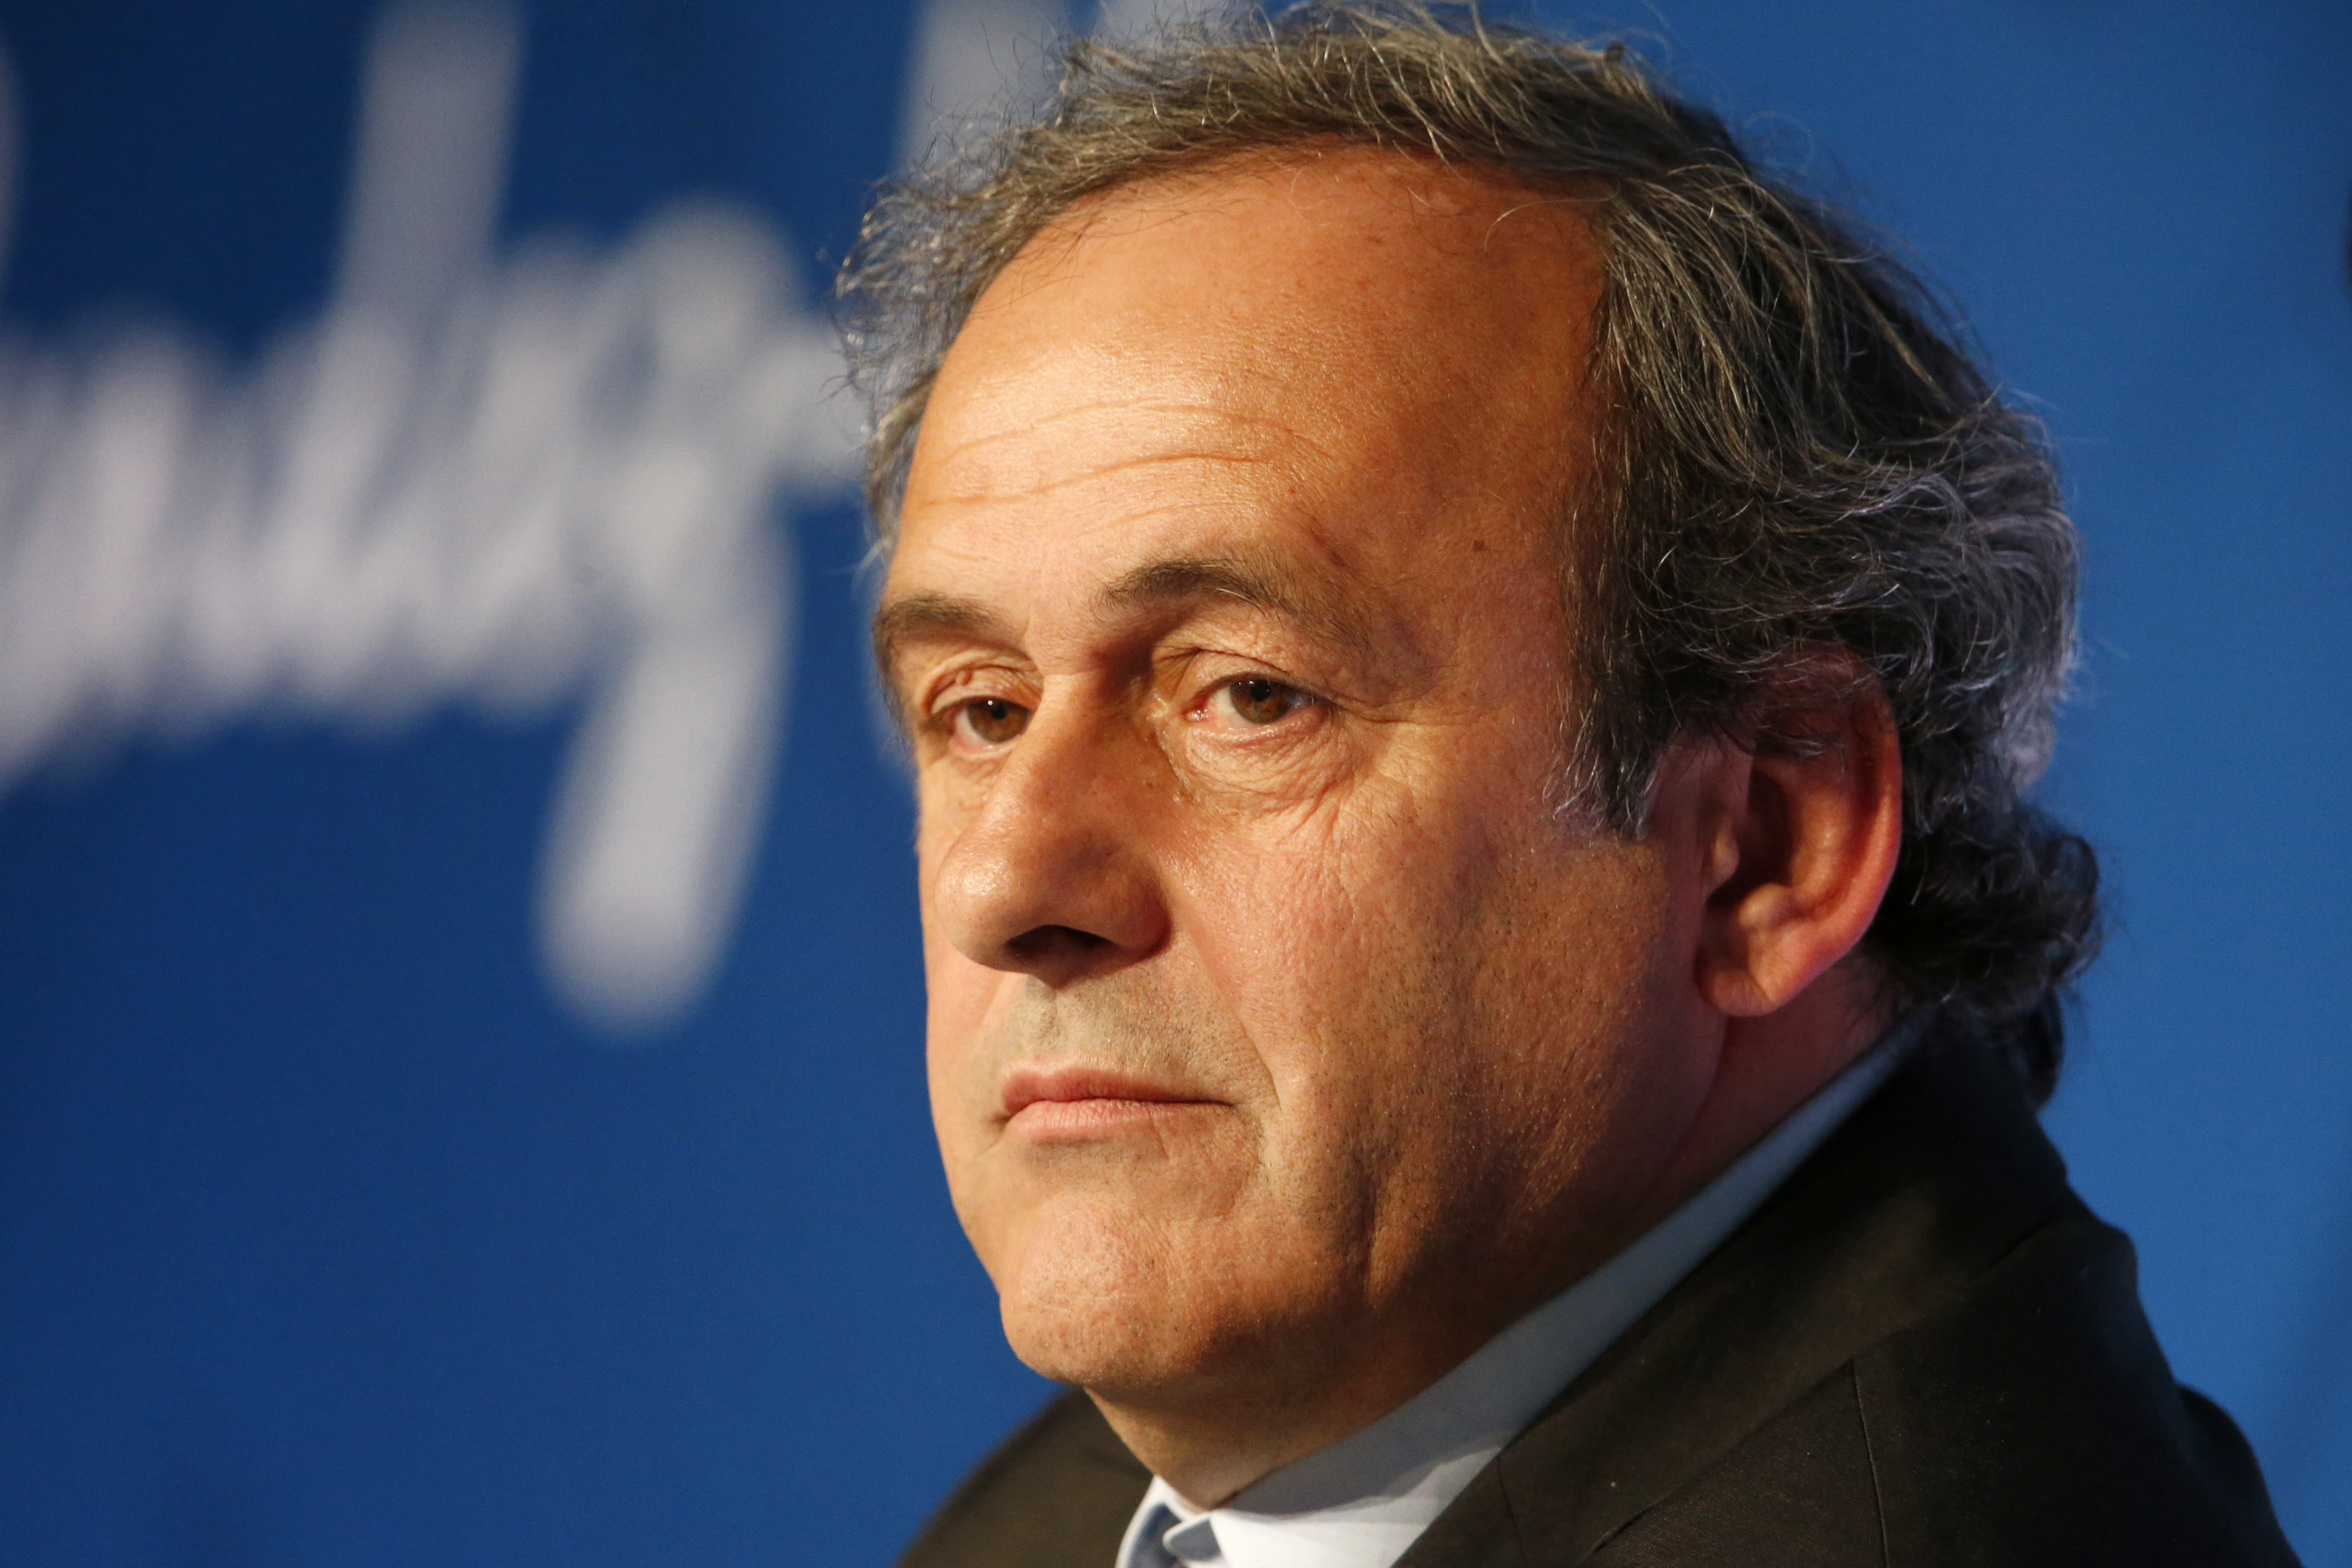 FIFA Scandal UEFA Head Michel Platini Asked To Run For President